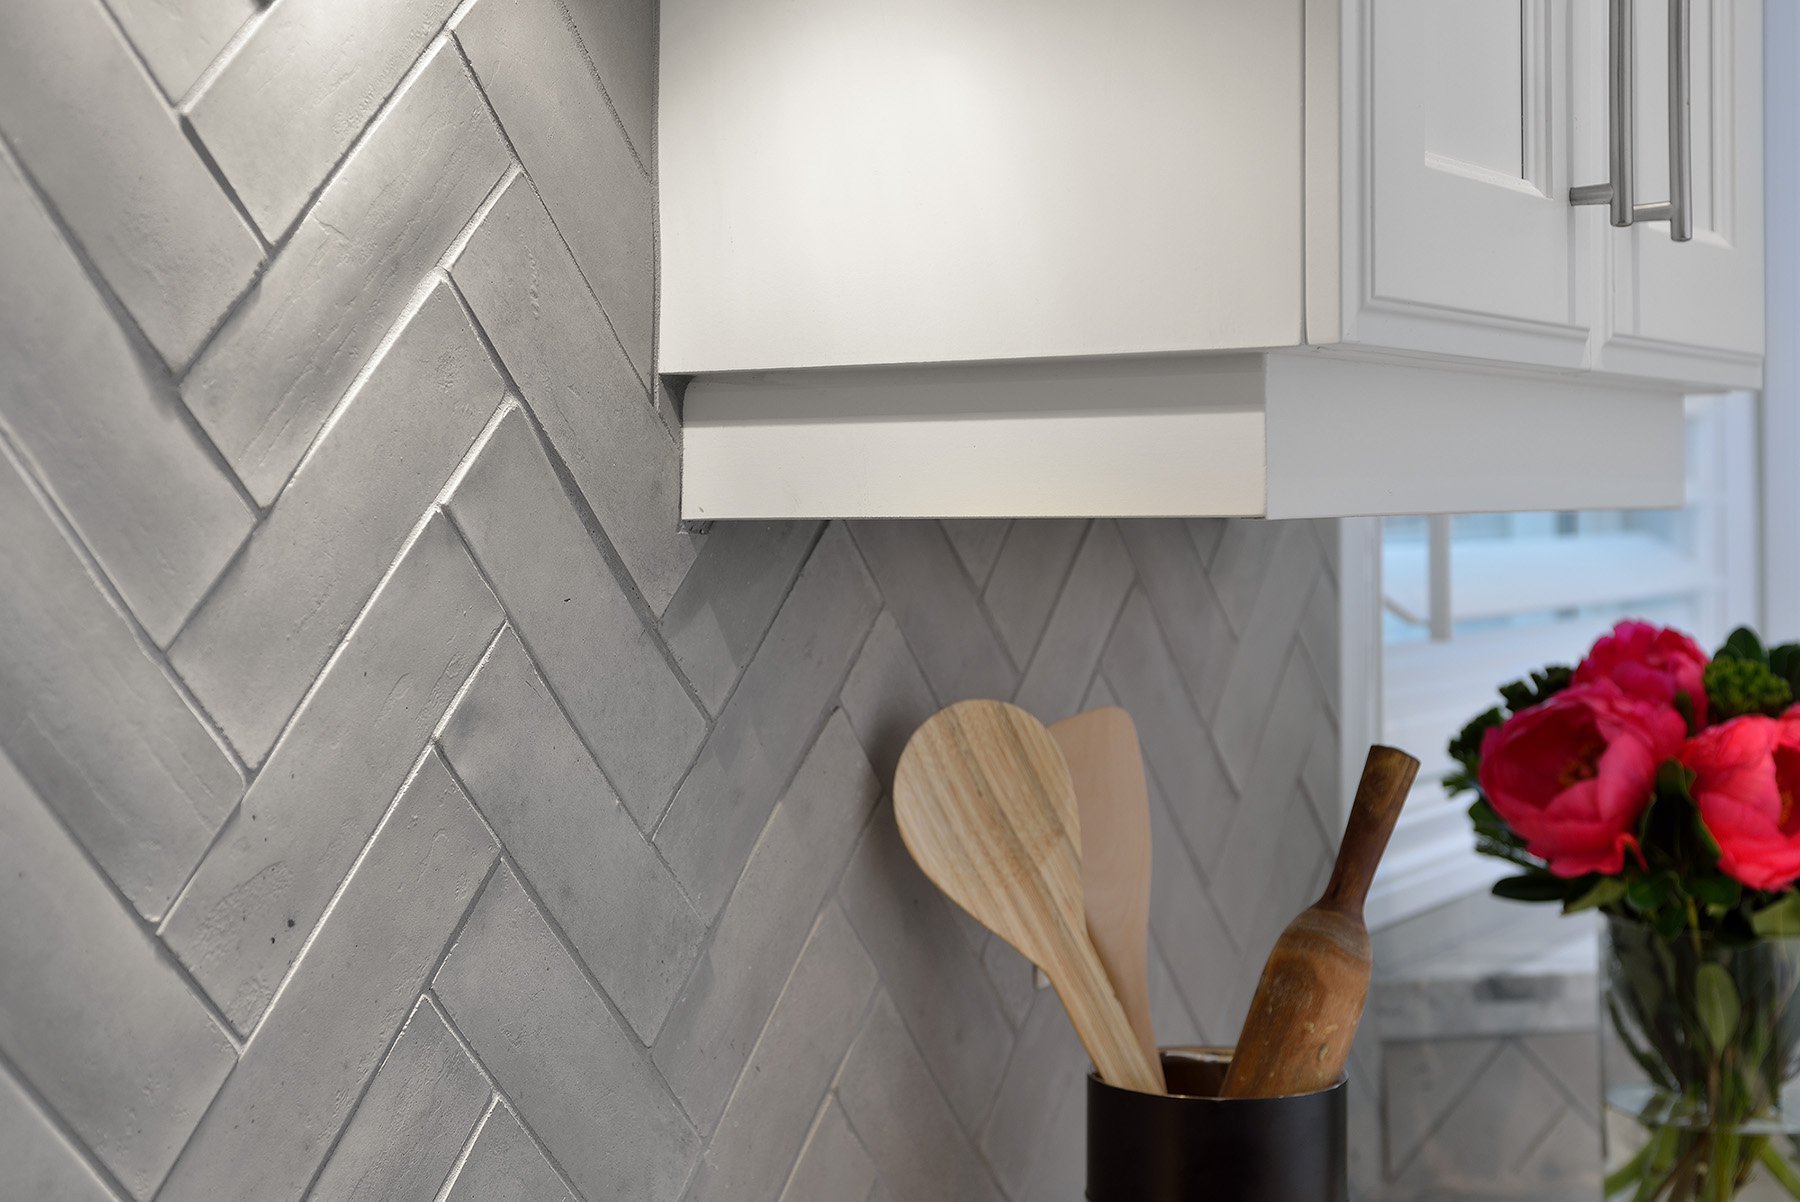 Hand Made Concrete Wall Tile Some Times Called Cement Tile Rustic Elegance Handcrafted In Los Angeles Since 1966